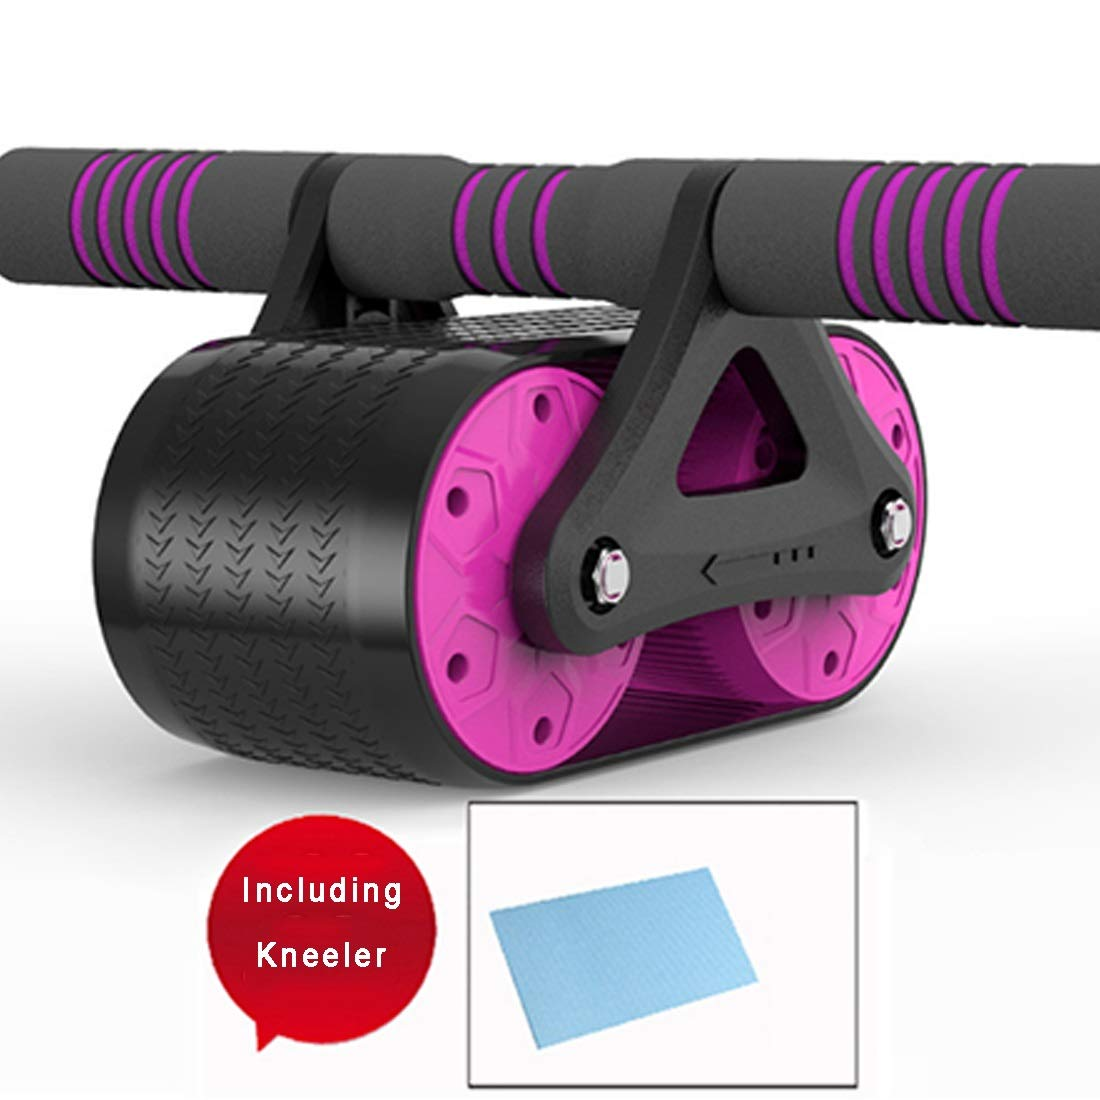 Sugoishop Roller Wheel for Abdominal Exercise Automatic Rebound Assistance and Resistance Springs with Ergonomic Handle Sold with Knee Pad (Color : Purple)